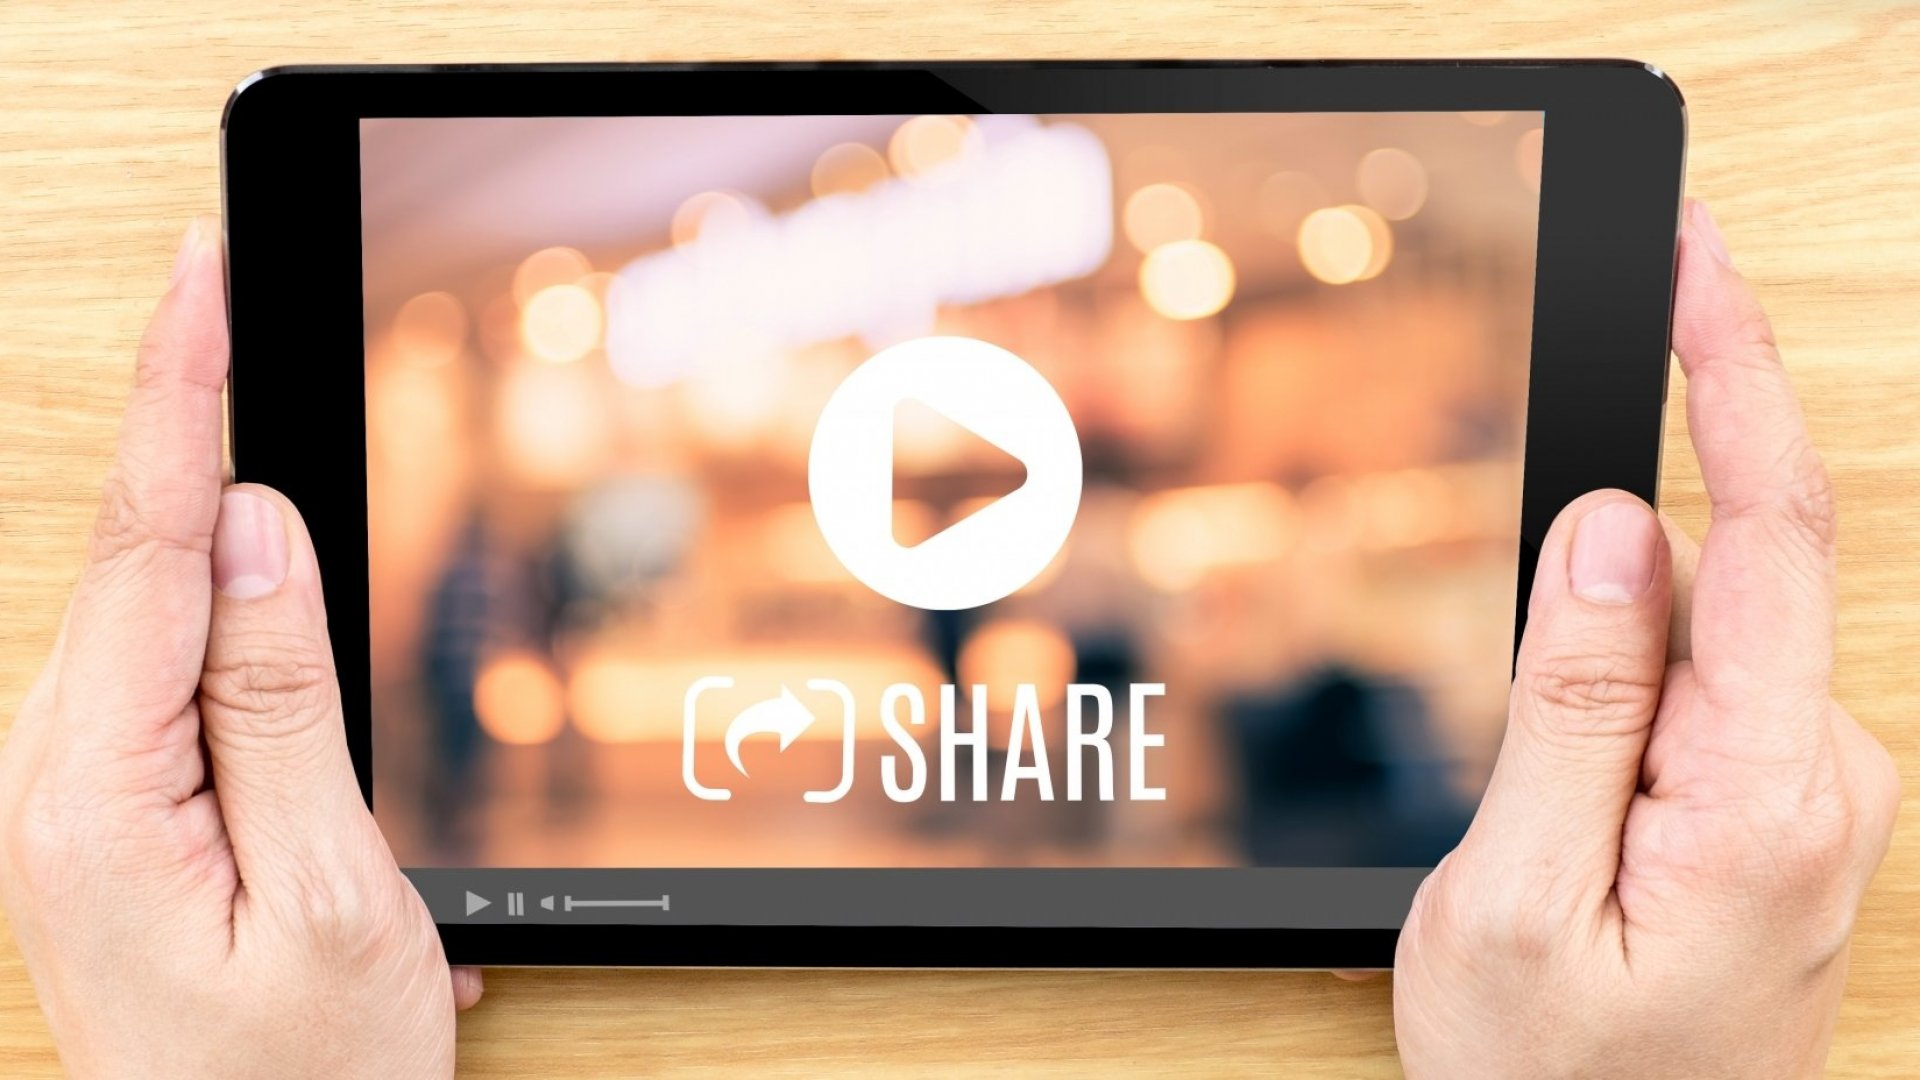 Want Your Video to Go Viral? Follow These 4 Essential Steps, Says an Analysis of 33,000 Videos